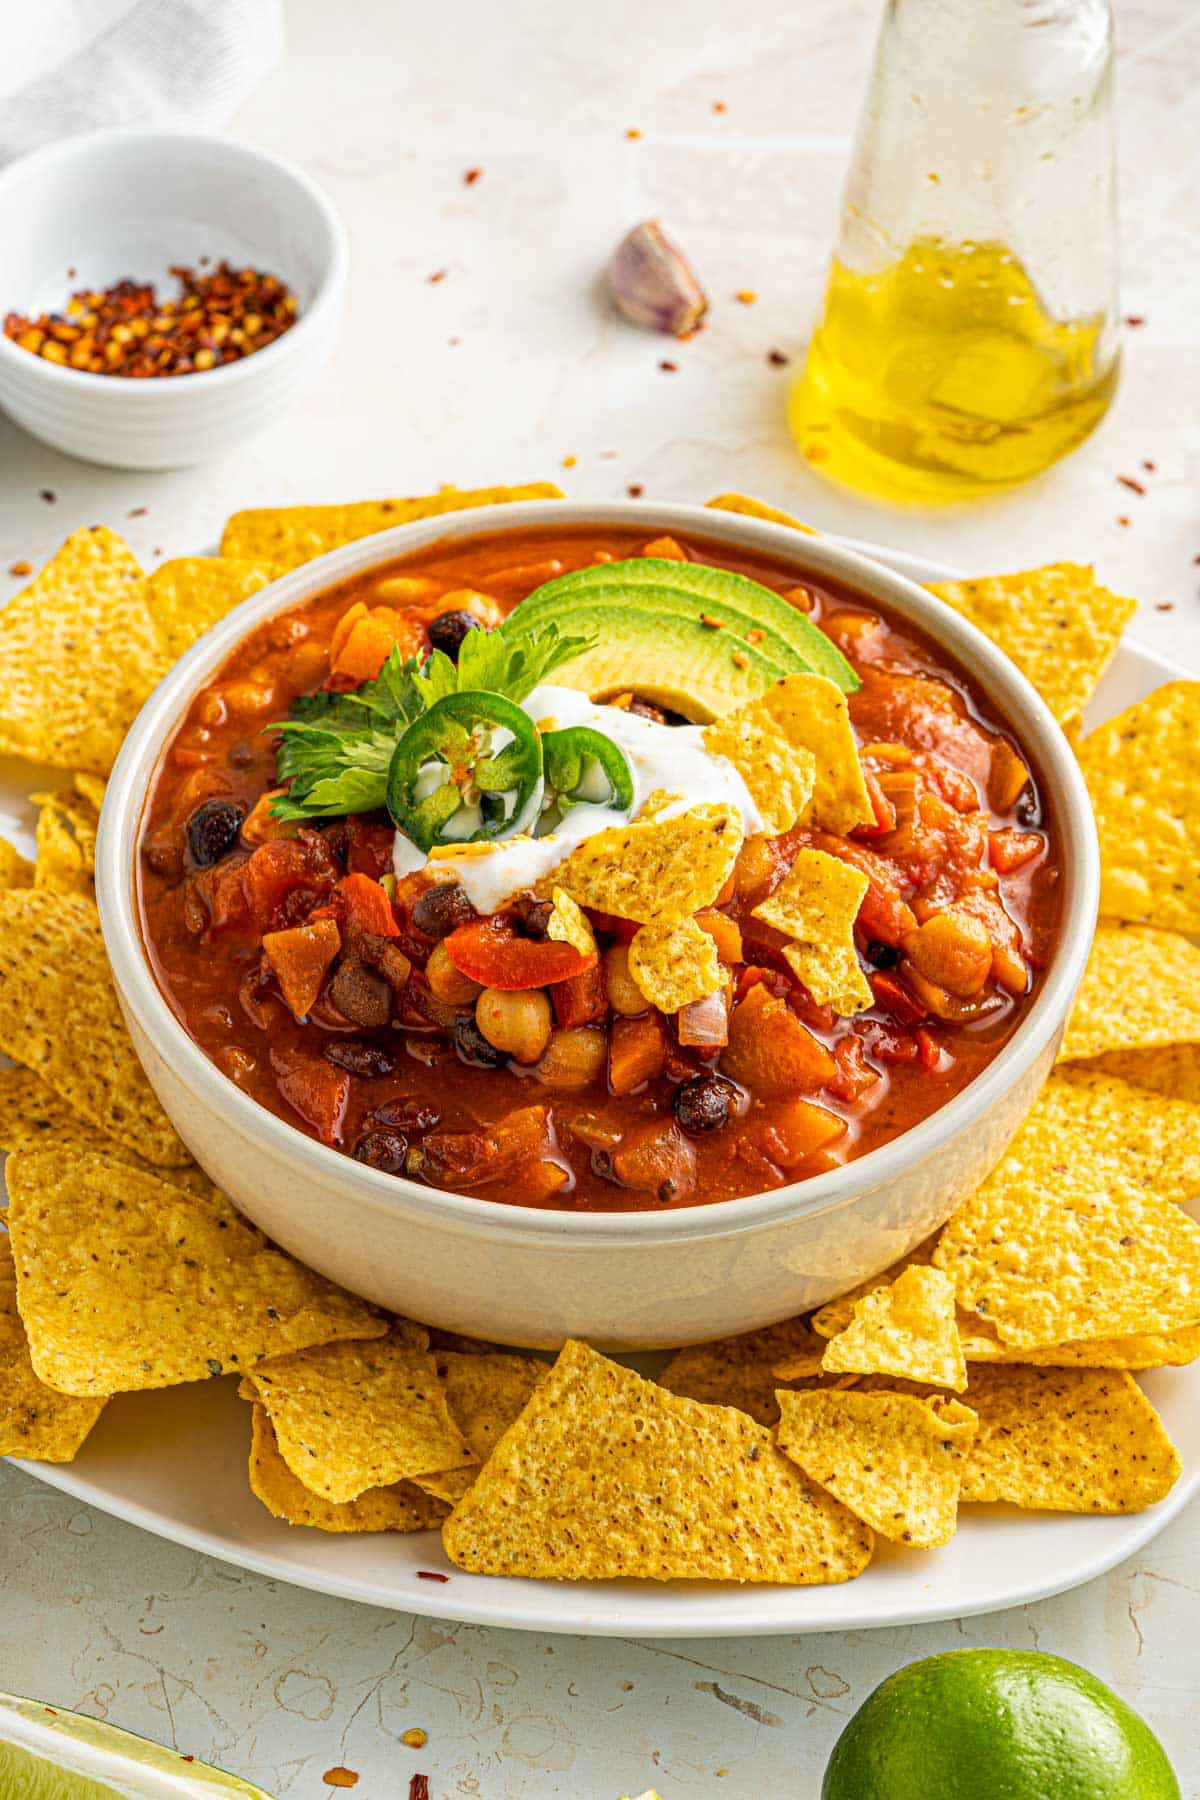 vegetarian smoky chili with tortilla chips, sour cream and avocado toppings